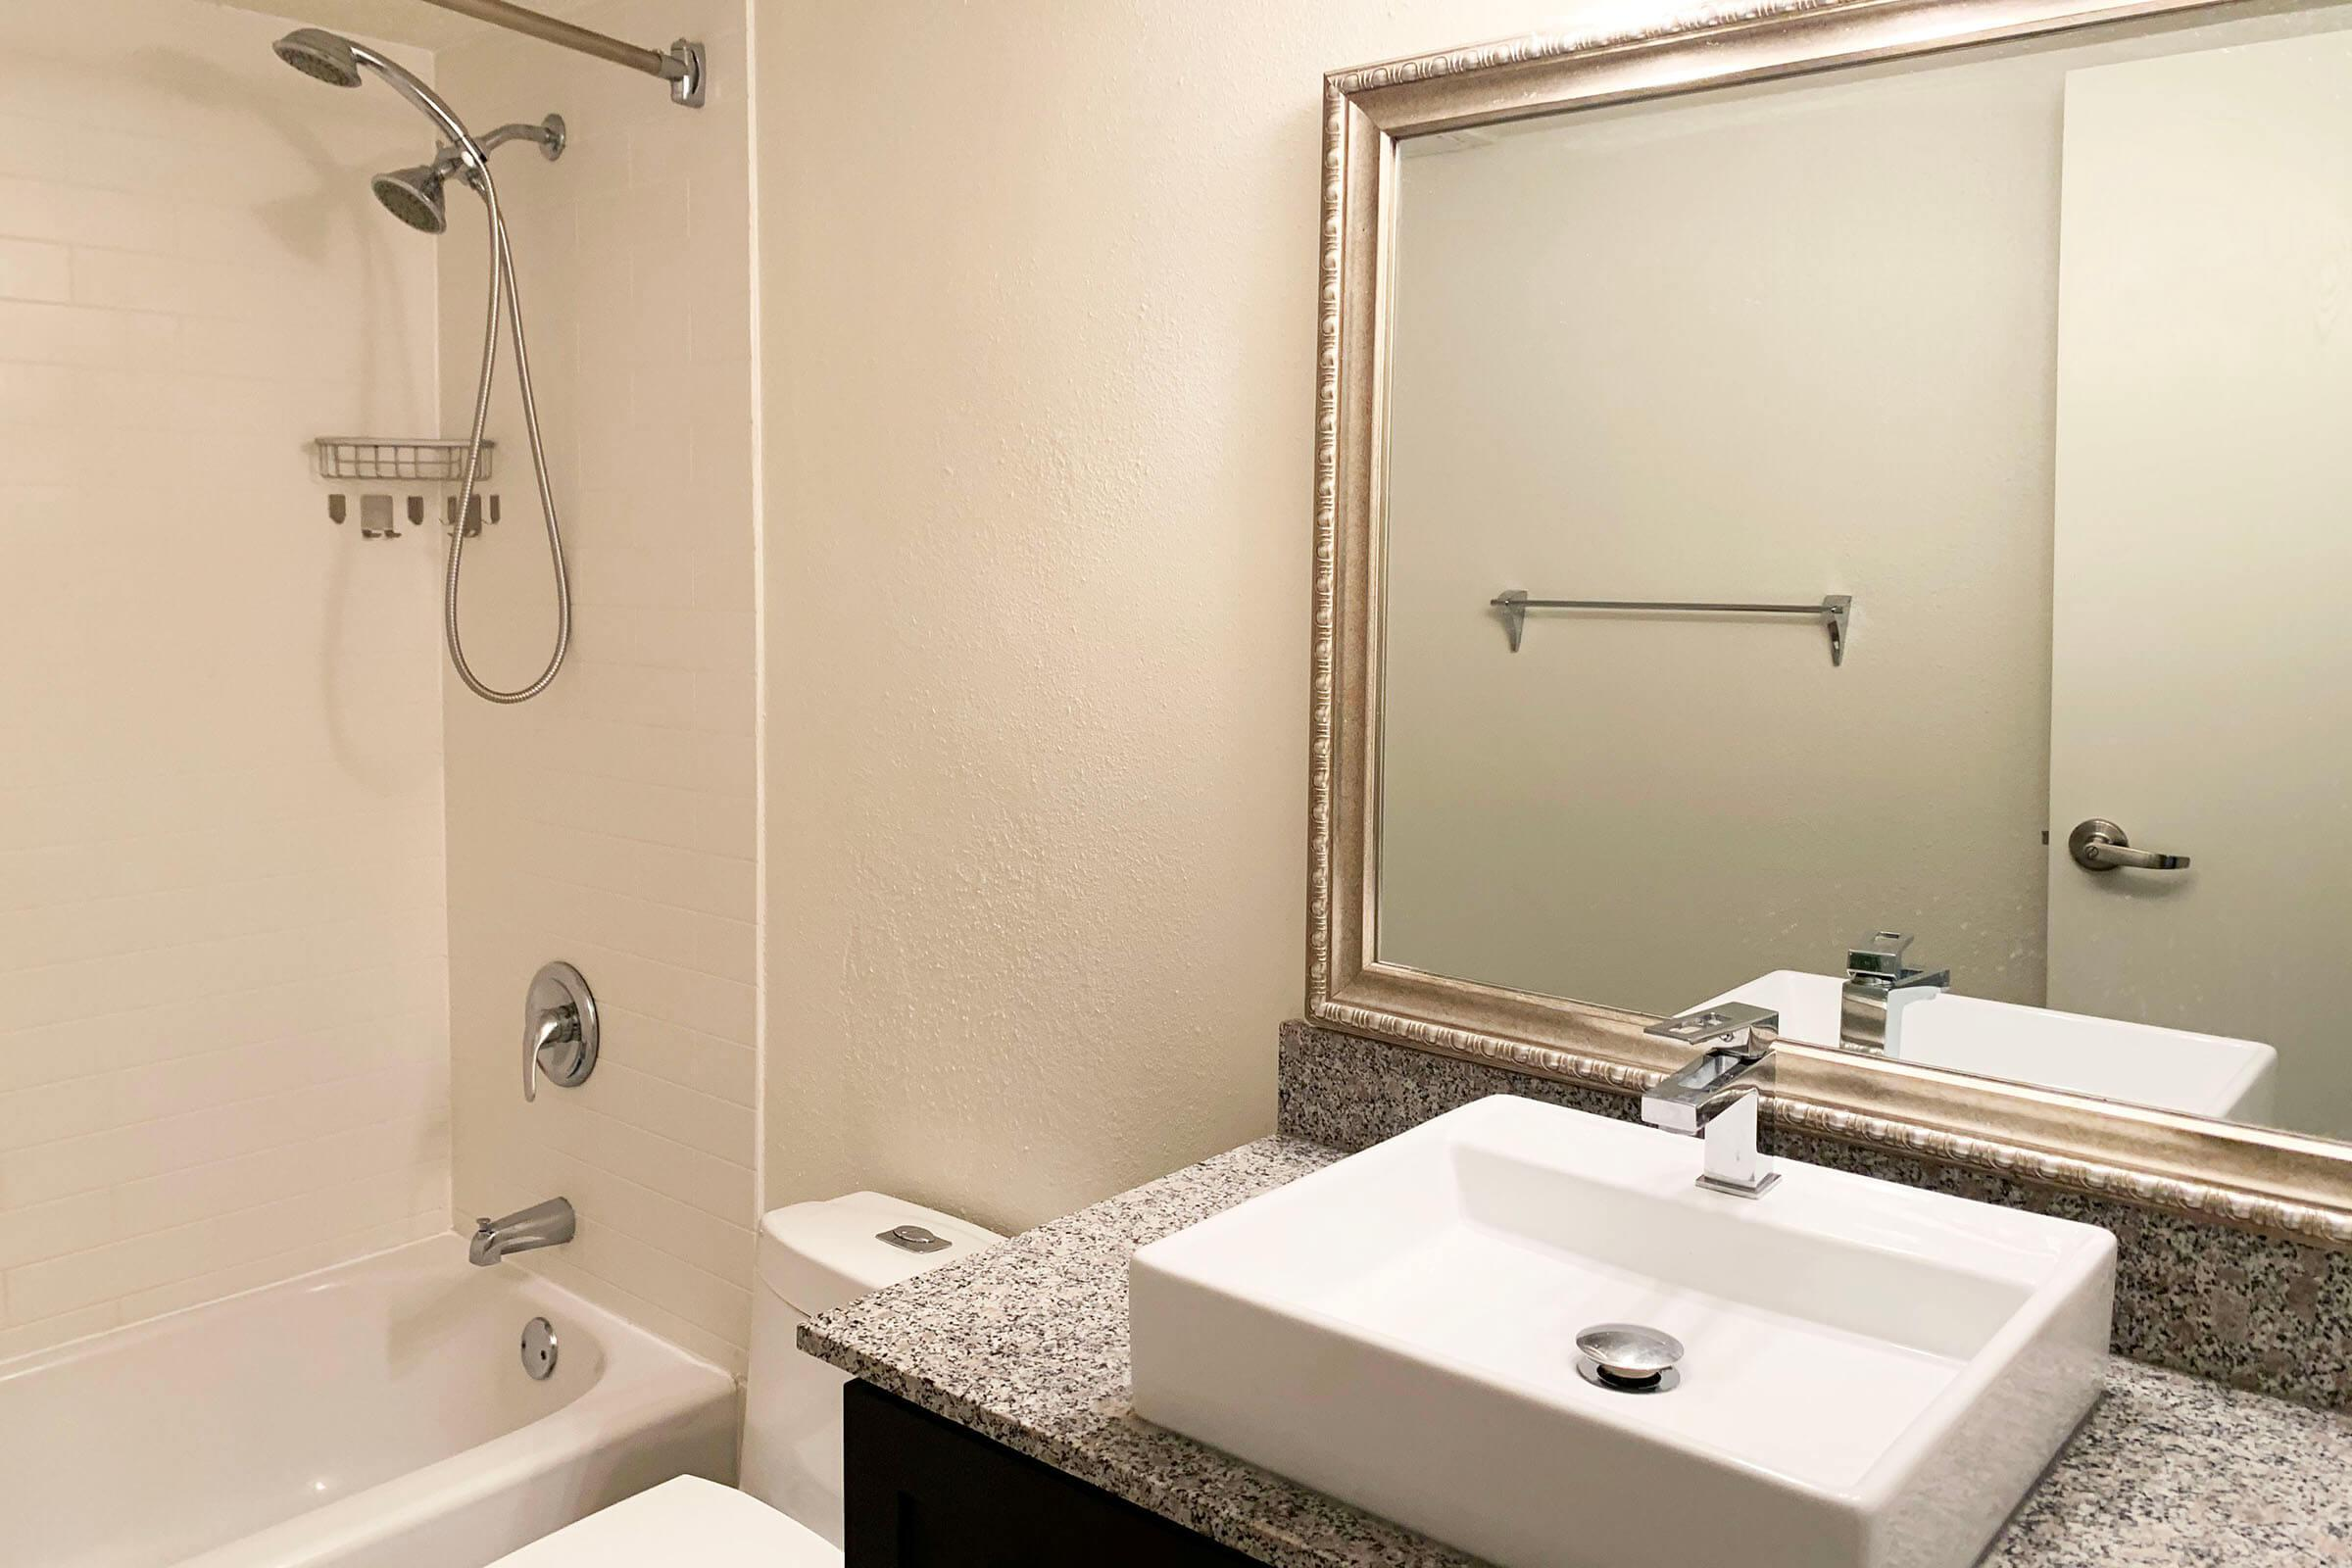 a double sink and a mirror